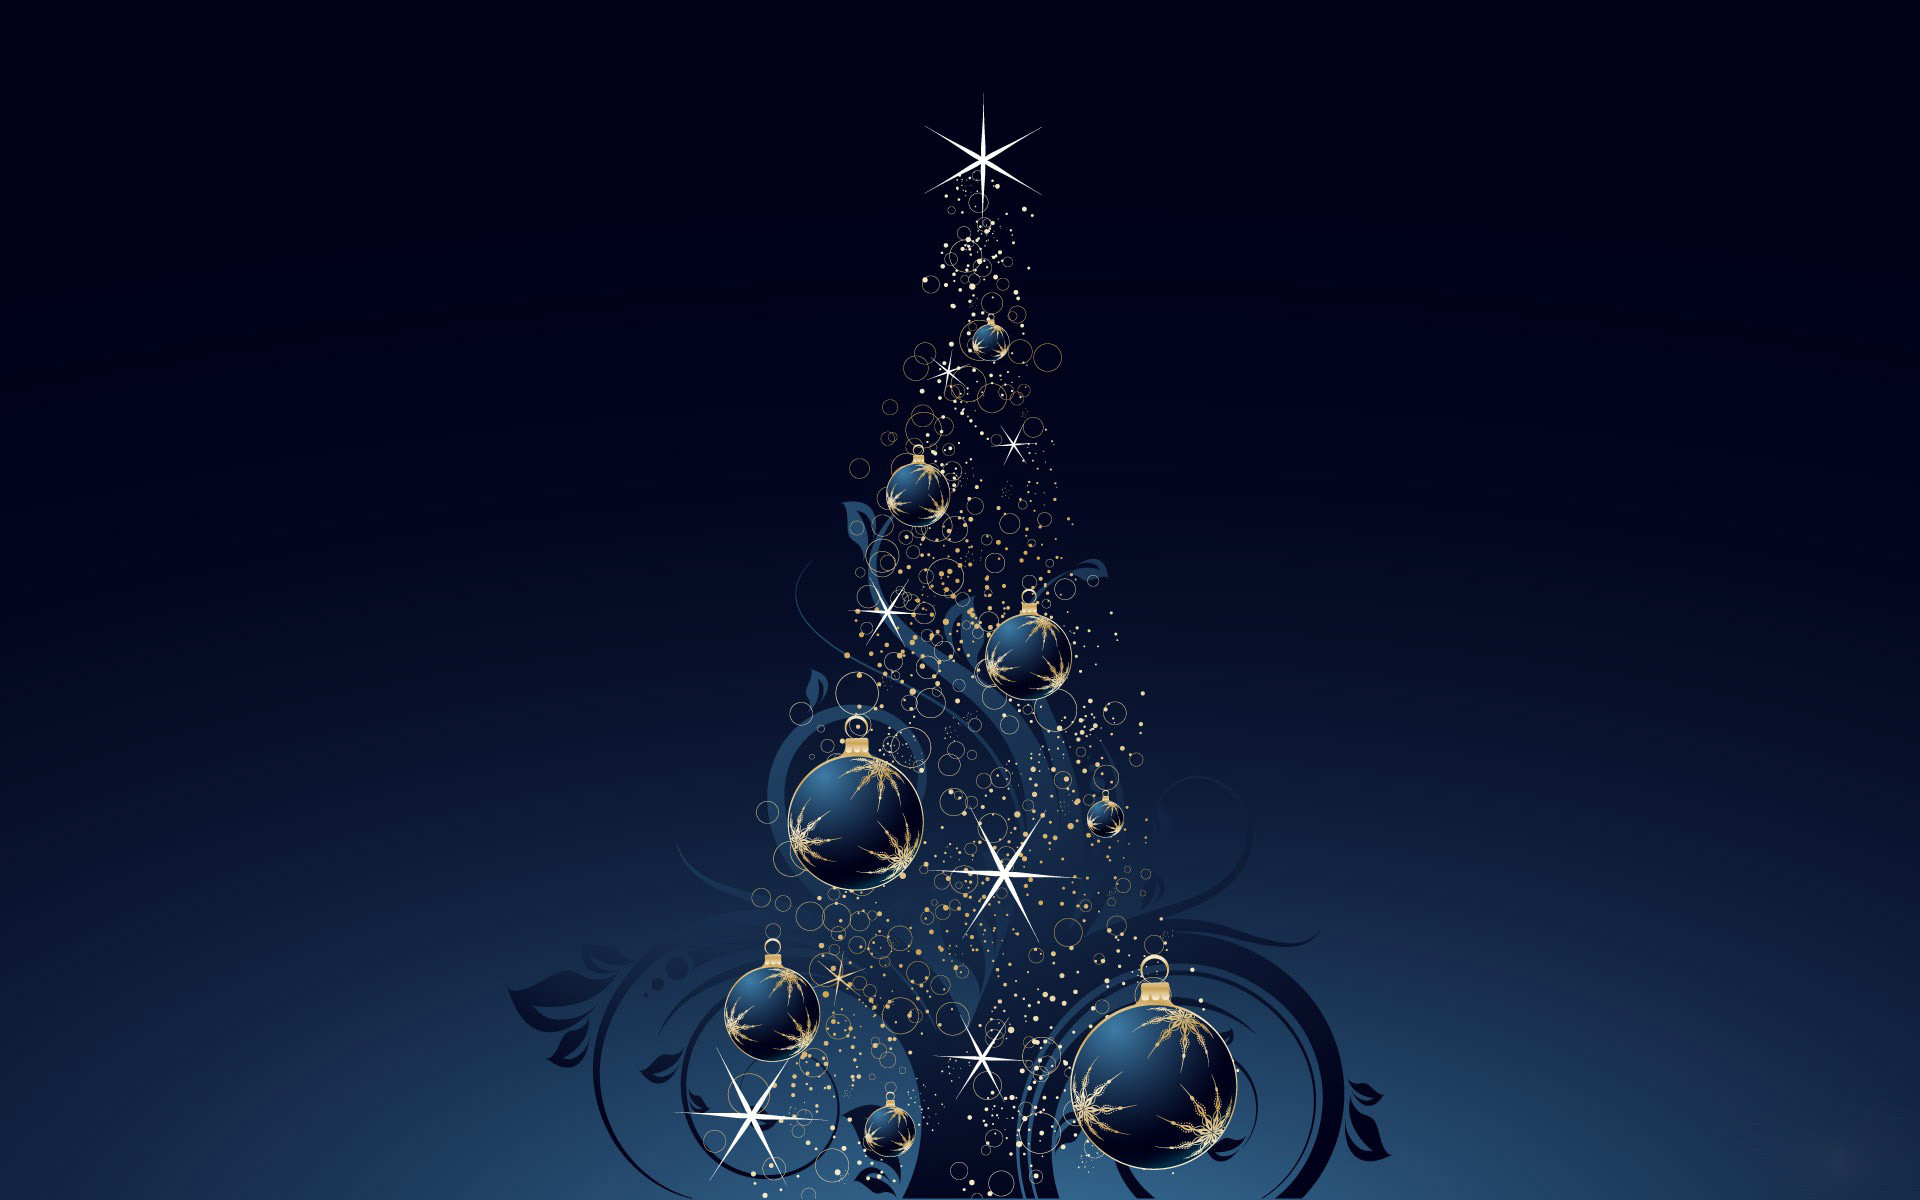 Christmas Hd Live Wallpaper For Pc